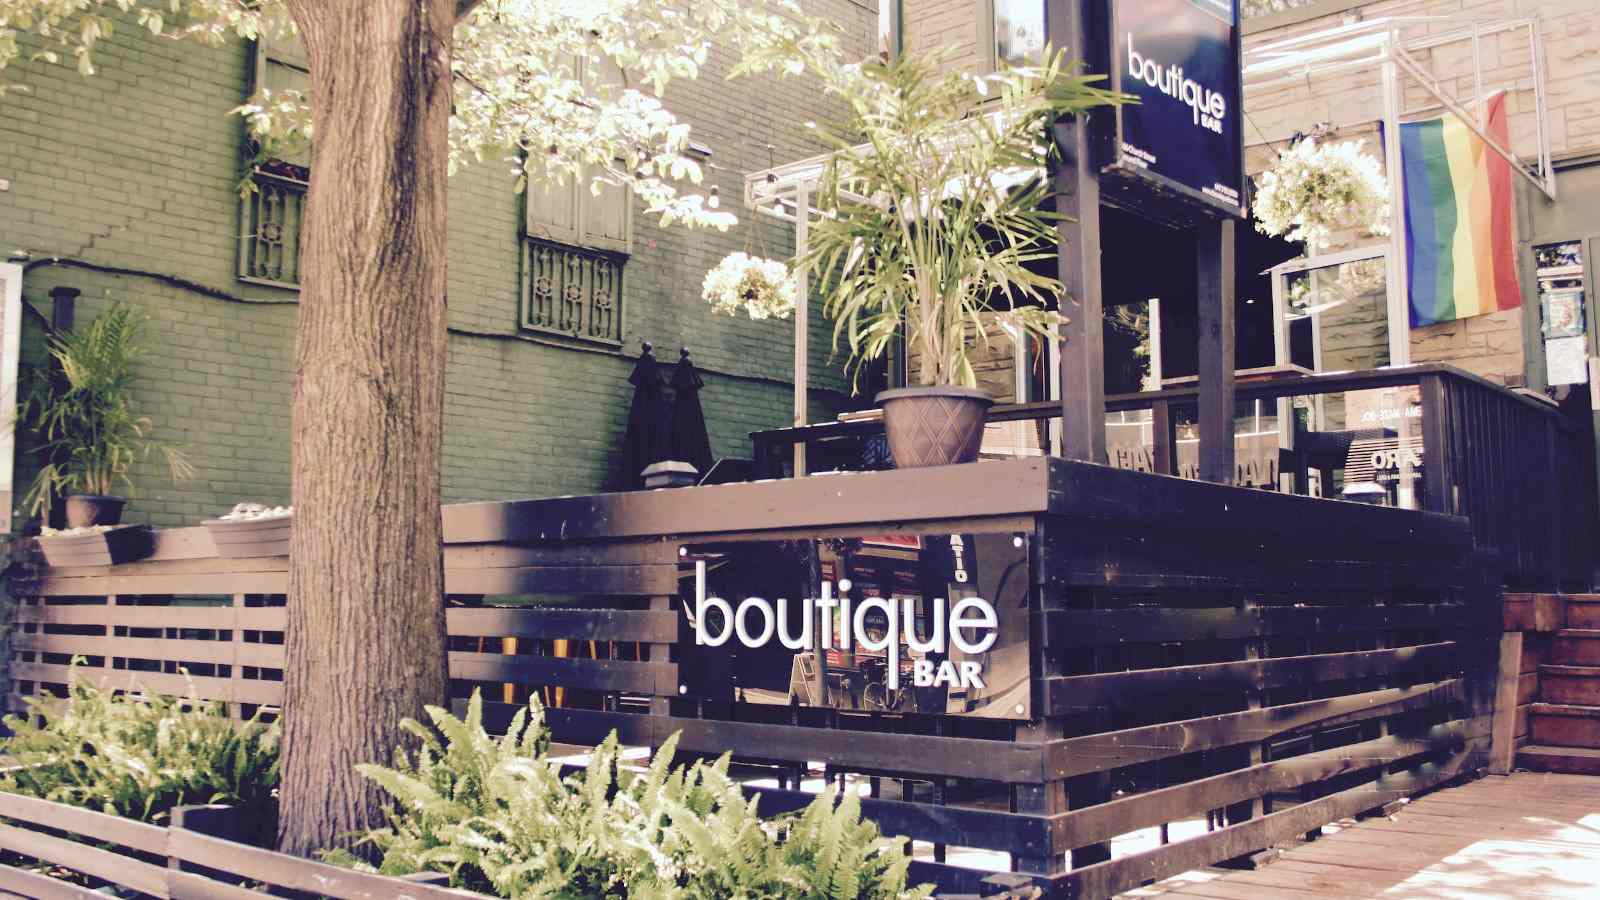 Boutique bar in Toronto with its outdoor terrasse